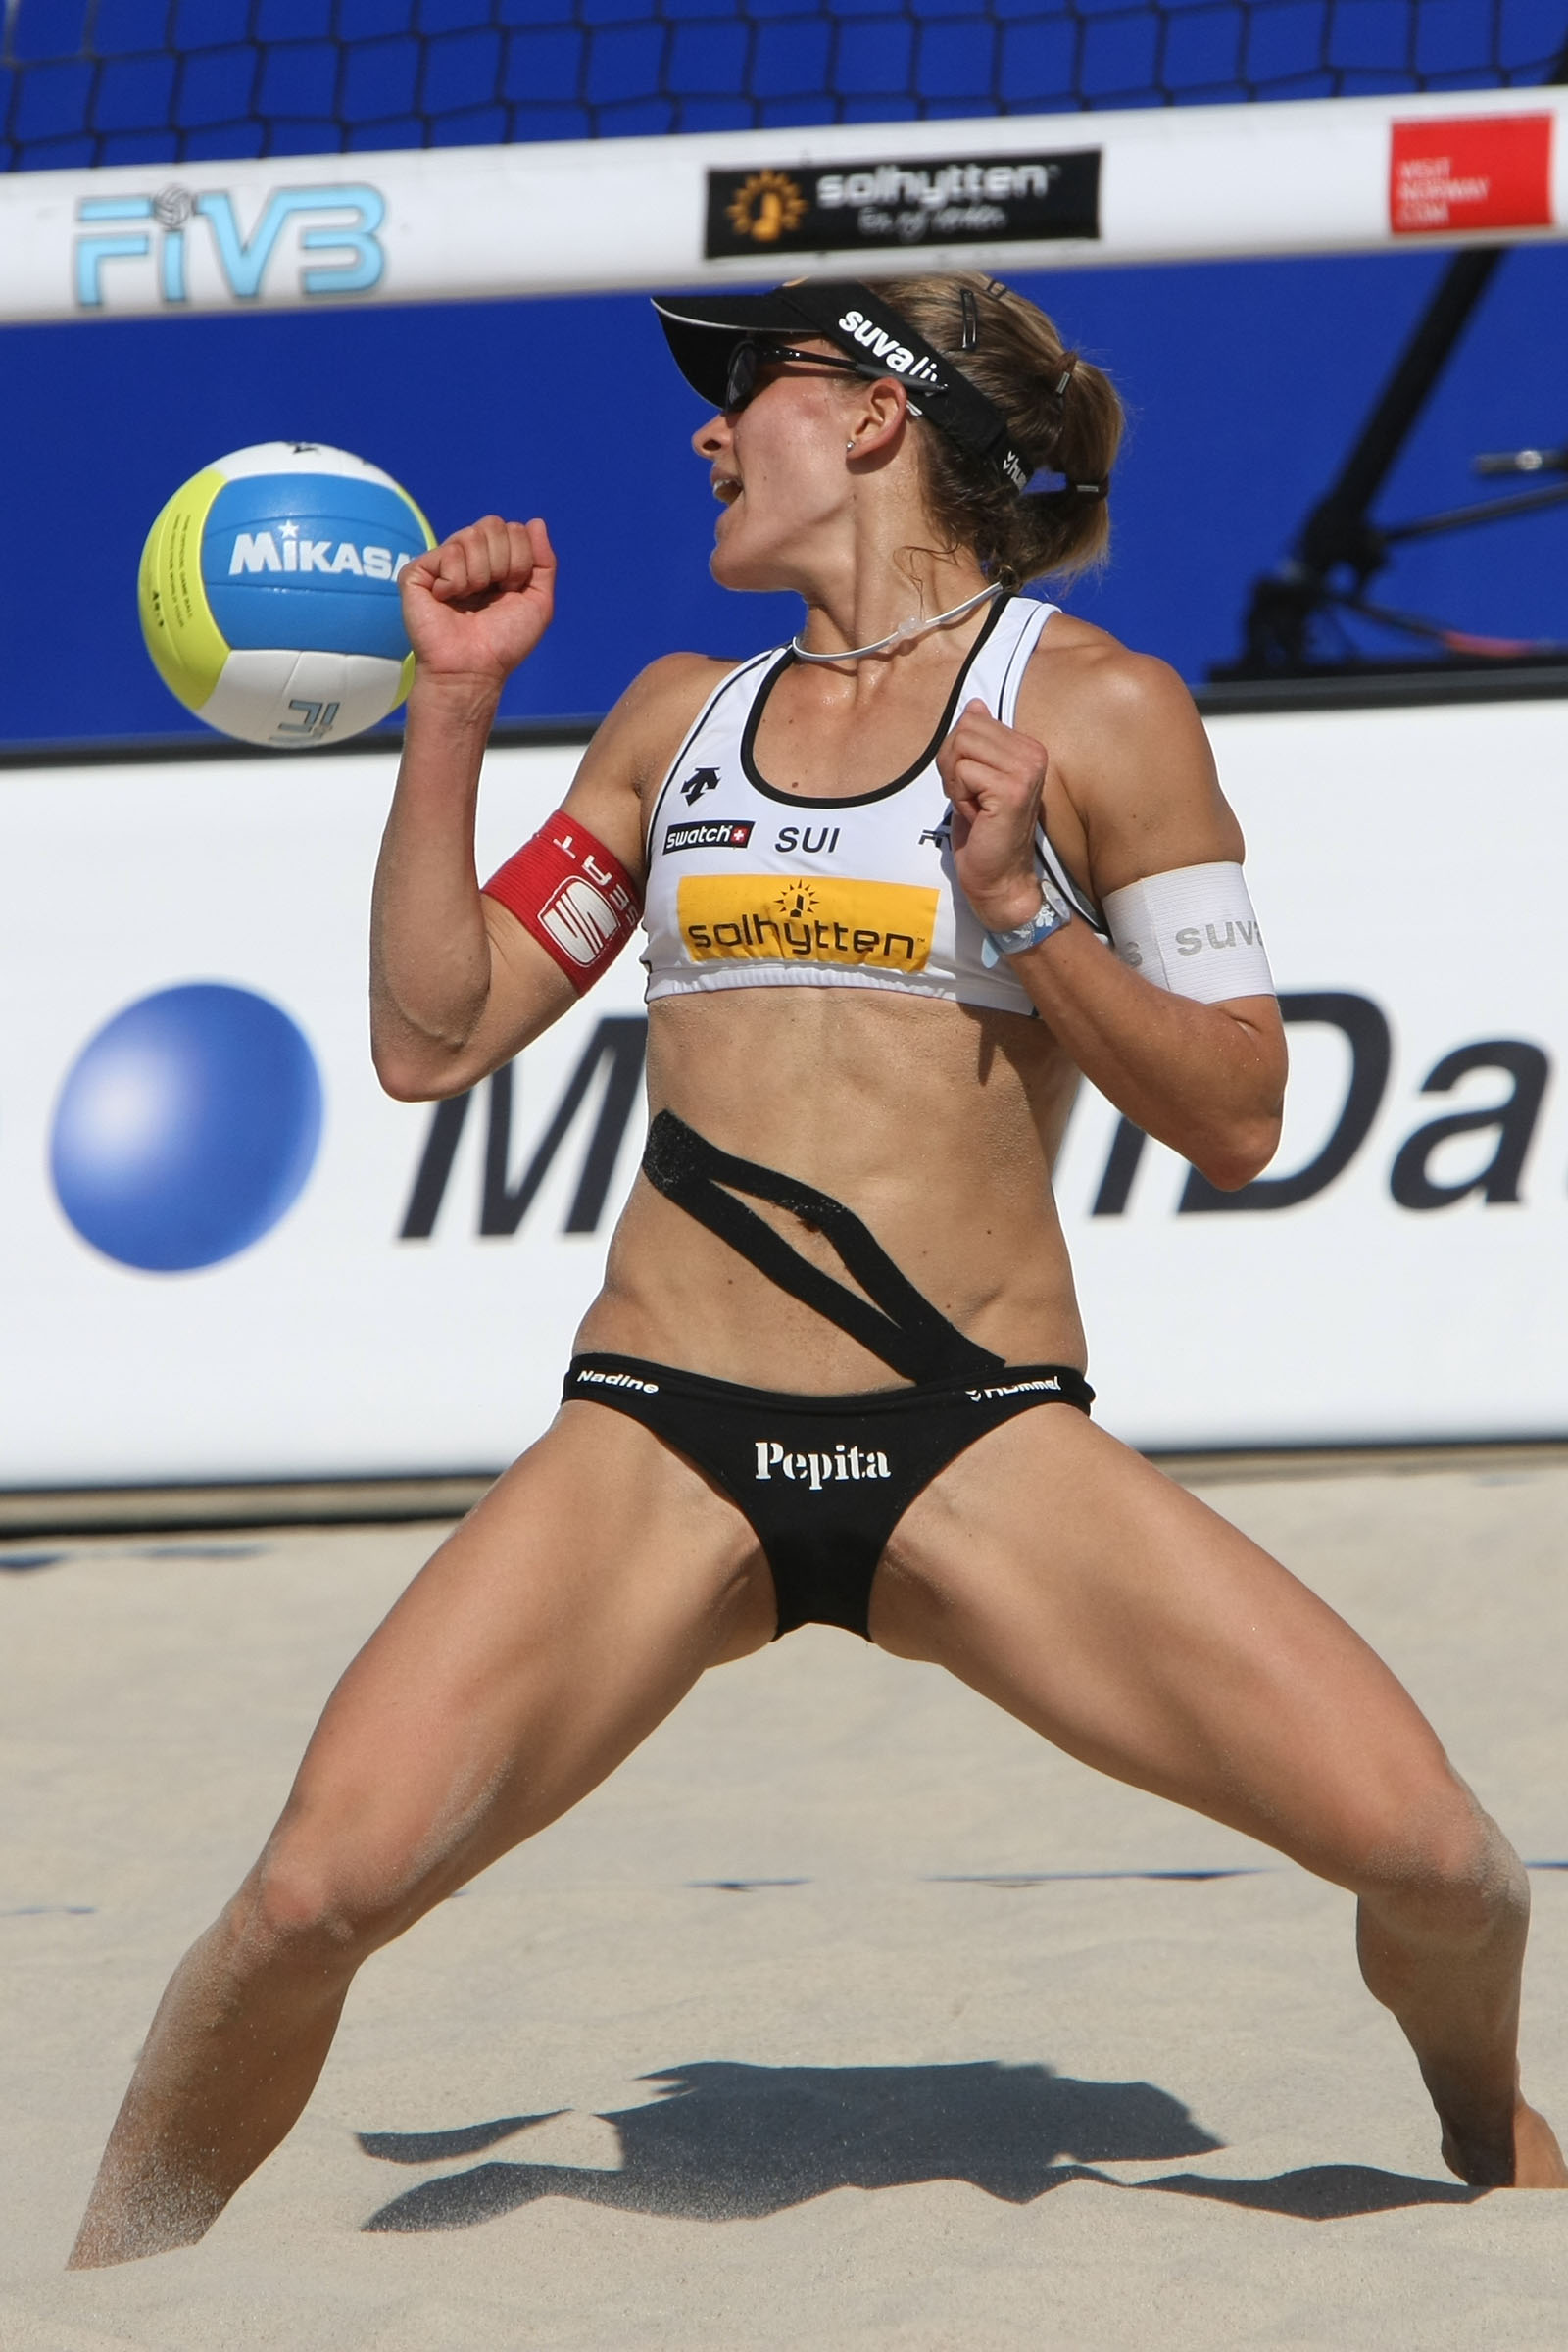 Hot beach volleyball female players dating 8